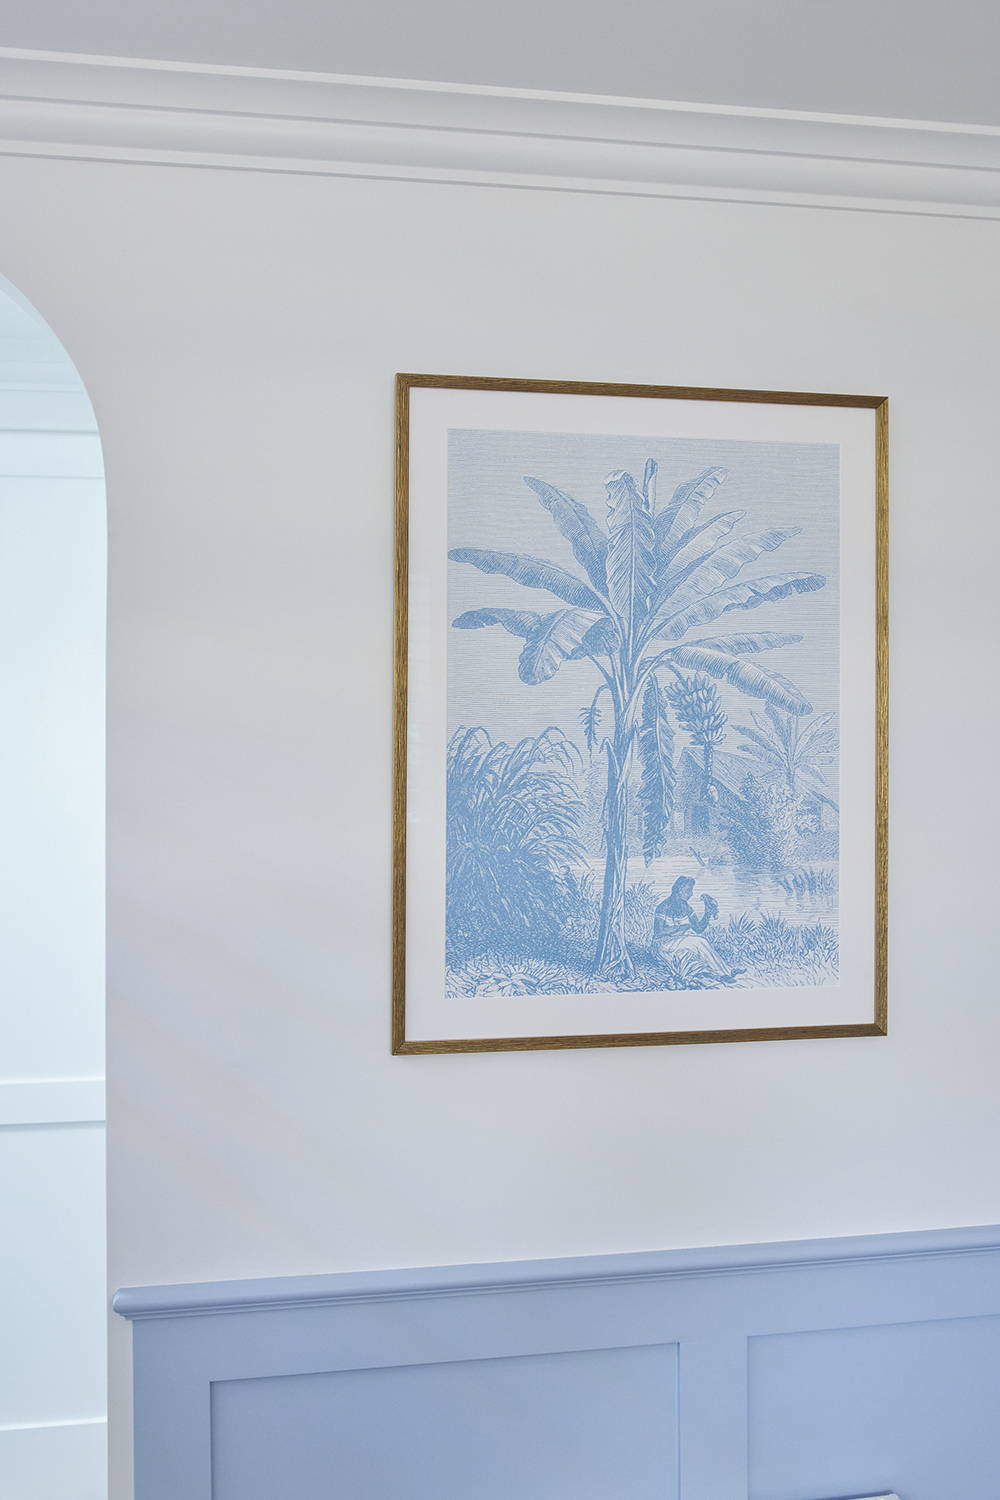 Framed Print in Kirsty and Jesse's The Block Guest Bedroom - A Hampton's bedroom interior with palm tree artwork framed in gold